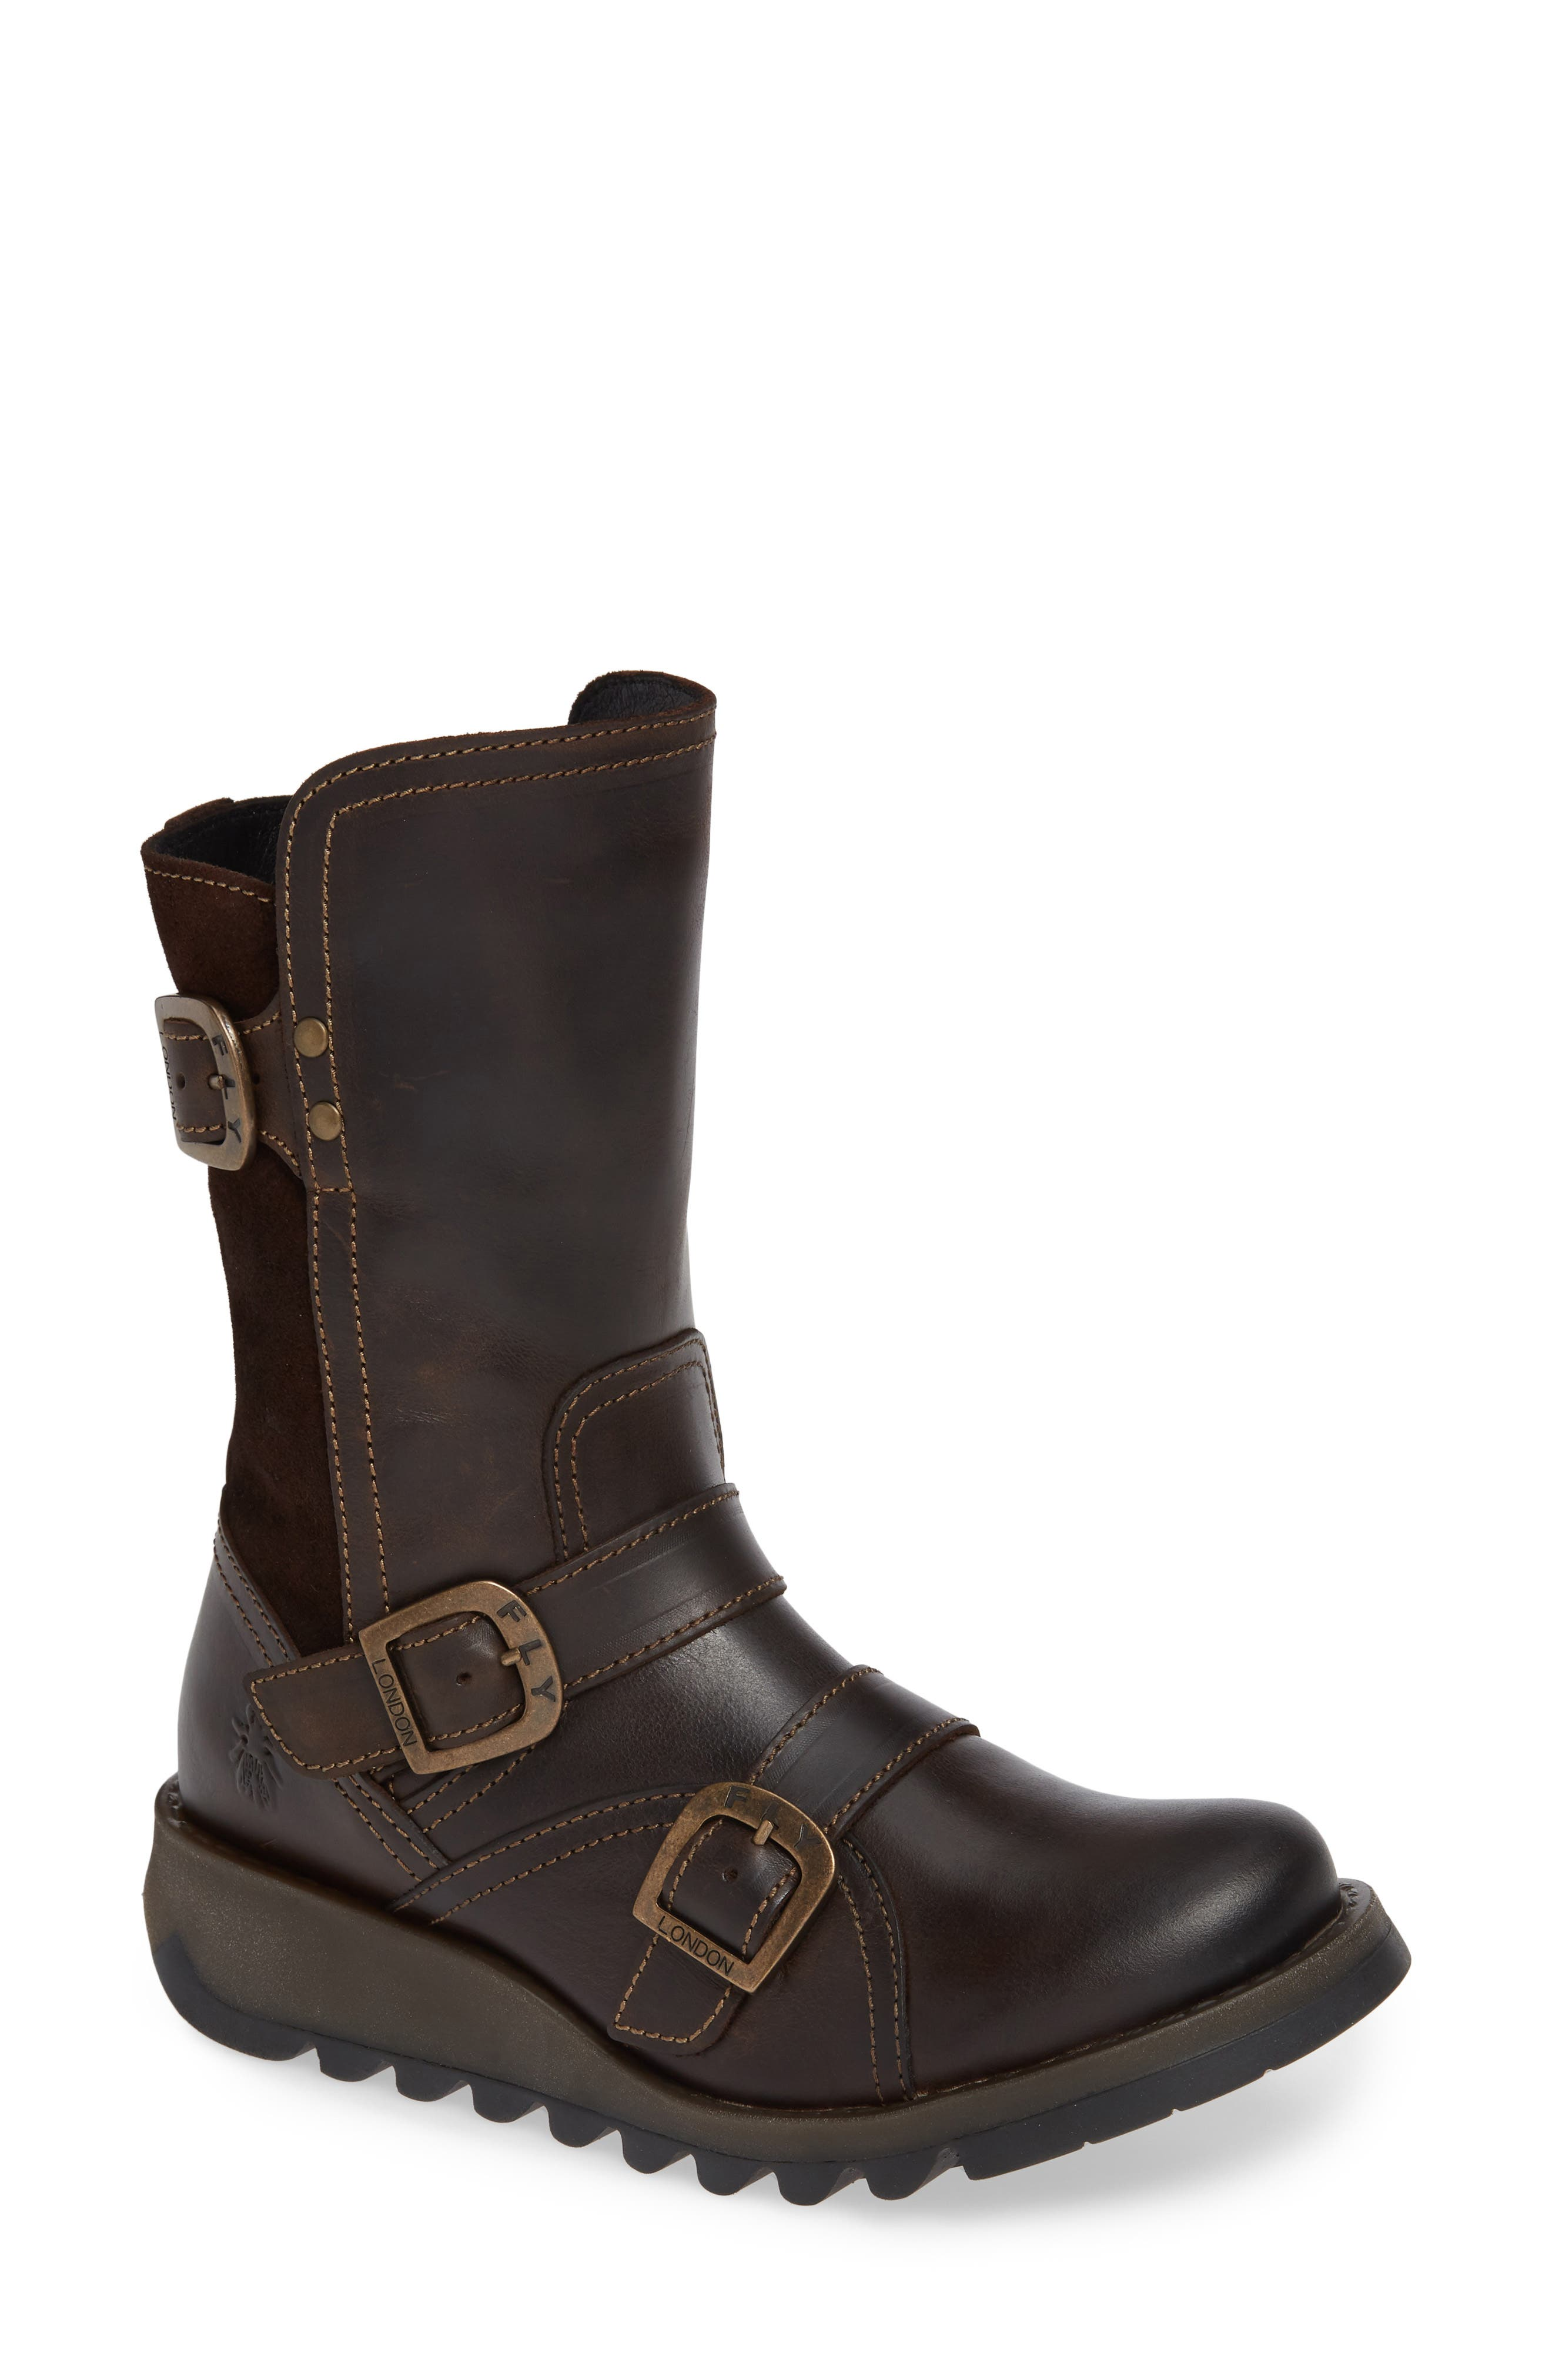 Fly London Selk Bootie - Brown